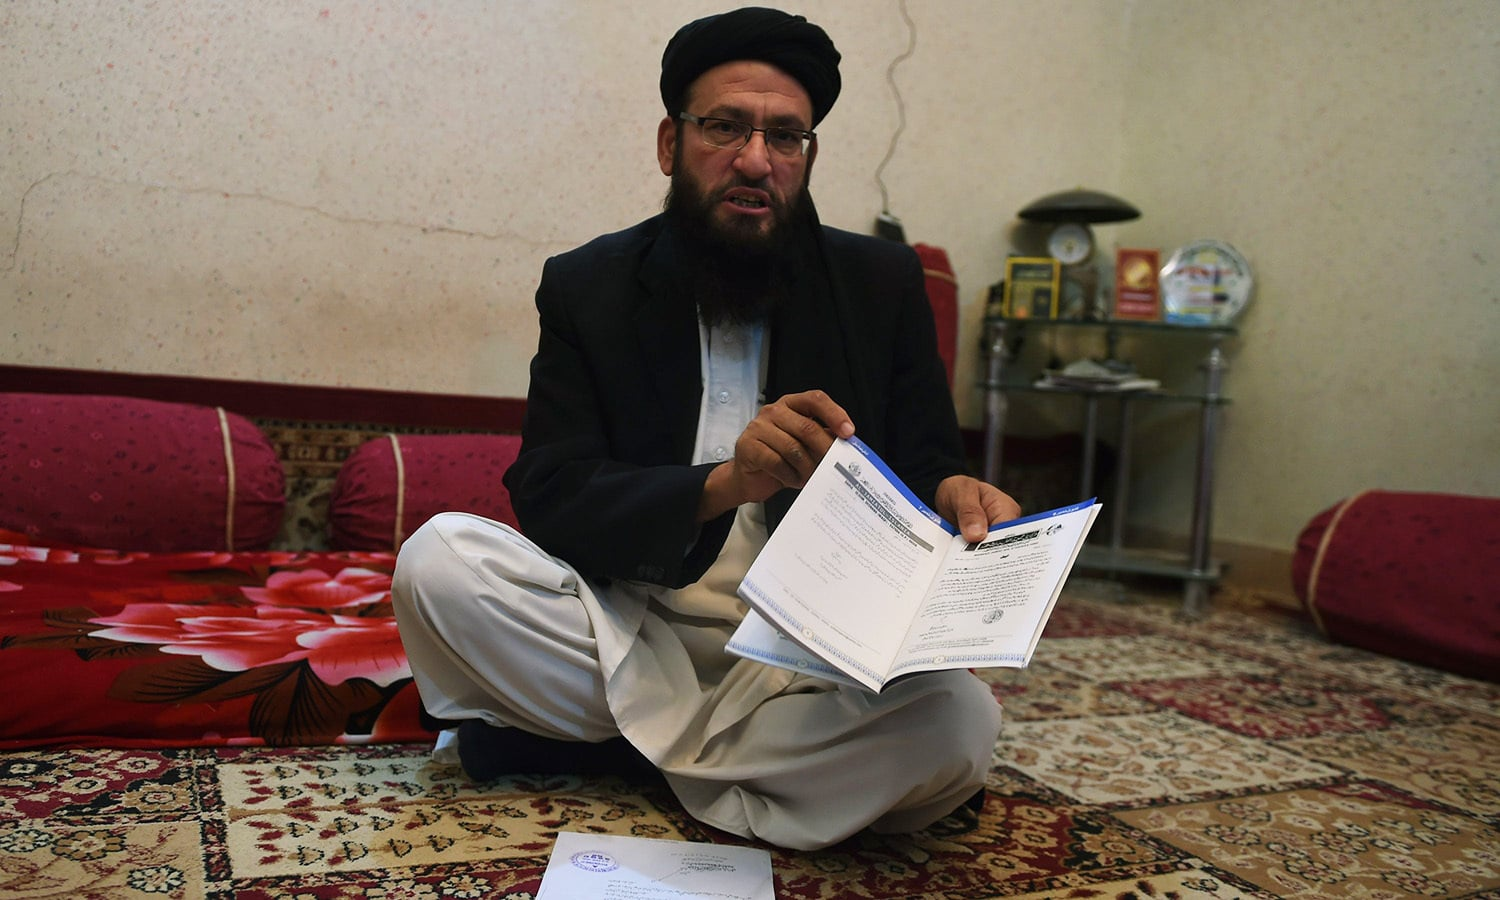 Government appointed Islamic cleric Maulana Umar Sadiq speaks during an interview with AFP in Karachi in this photograph taken on February 16, 2016.—AFP